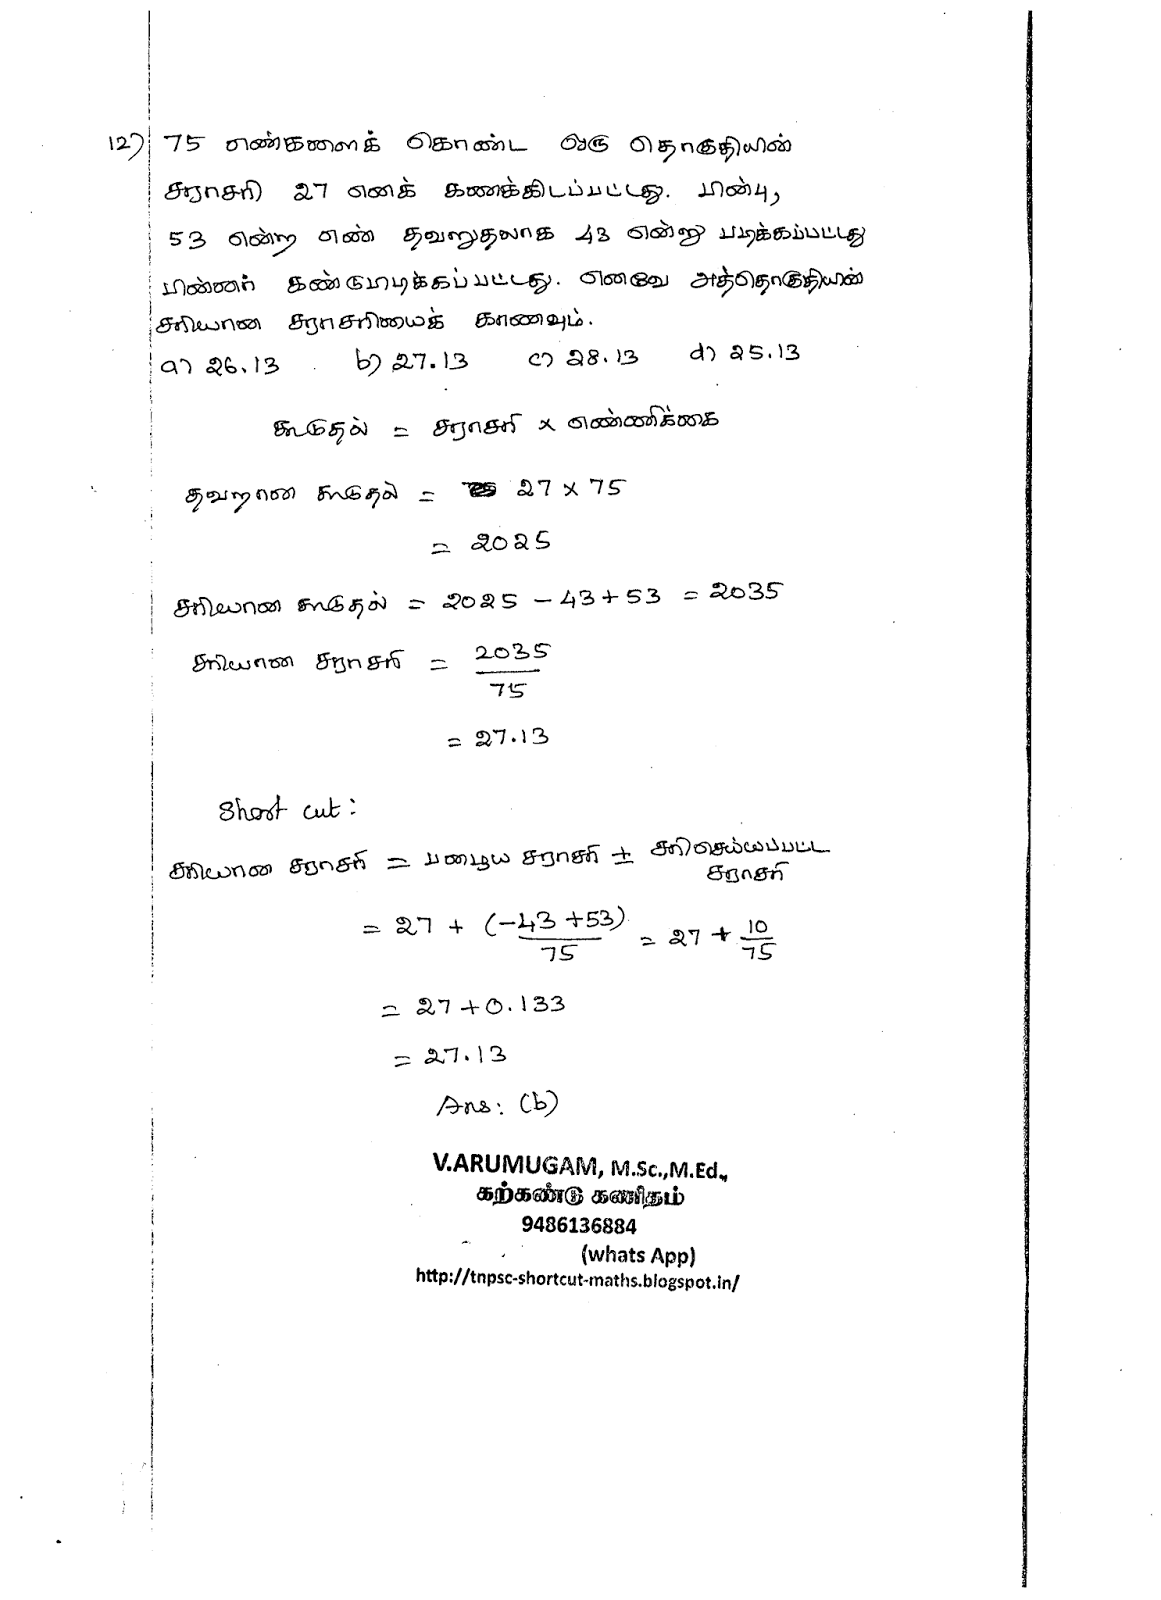 TNPSC-2017-COMBINED CIVIL SERVICES EXAMINATION-II, 2017 - 2018 (NON INTERVIEW POSTS)(GROUP-II-A SERVICES) EXAM-EXAM DATE: 06.08.2017